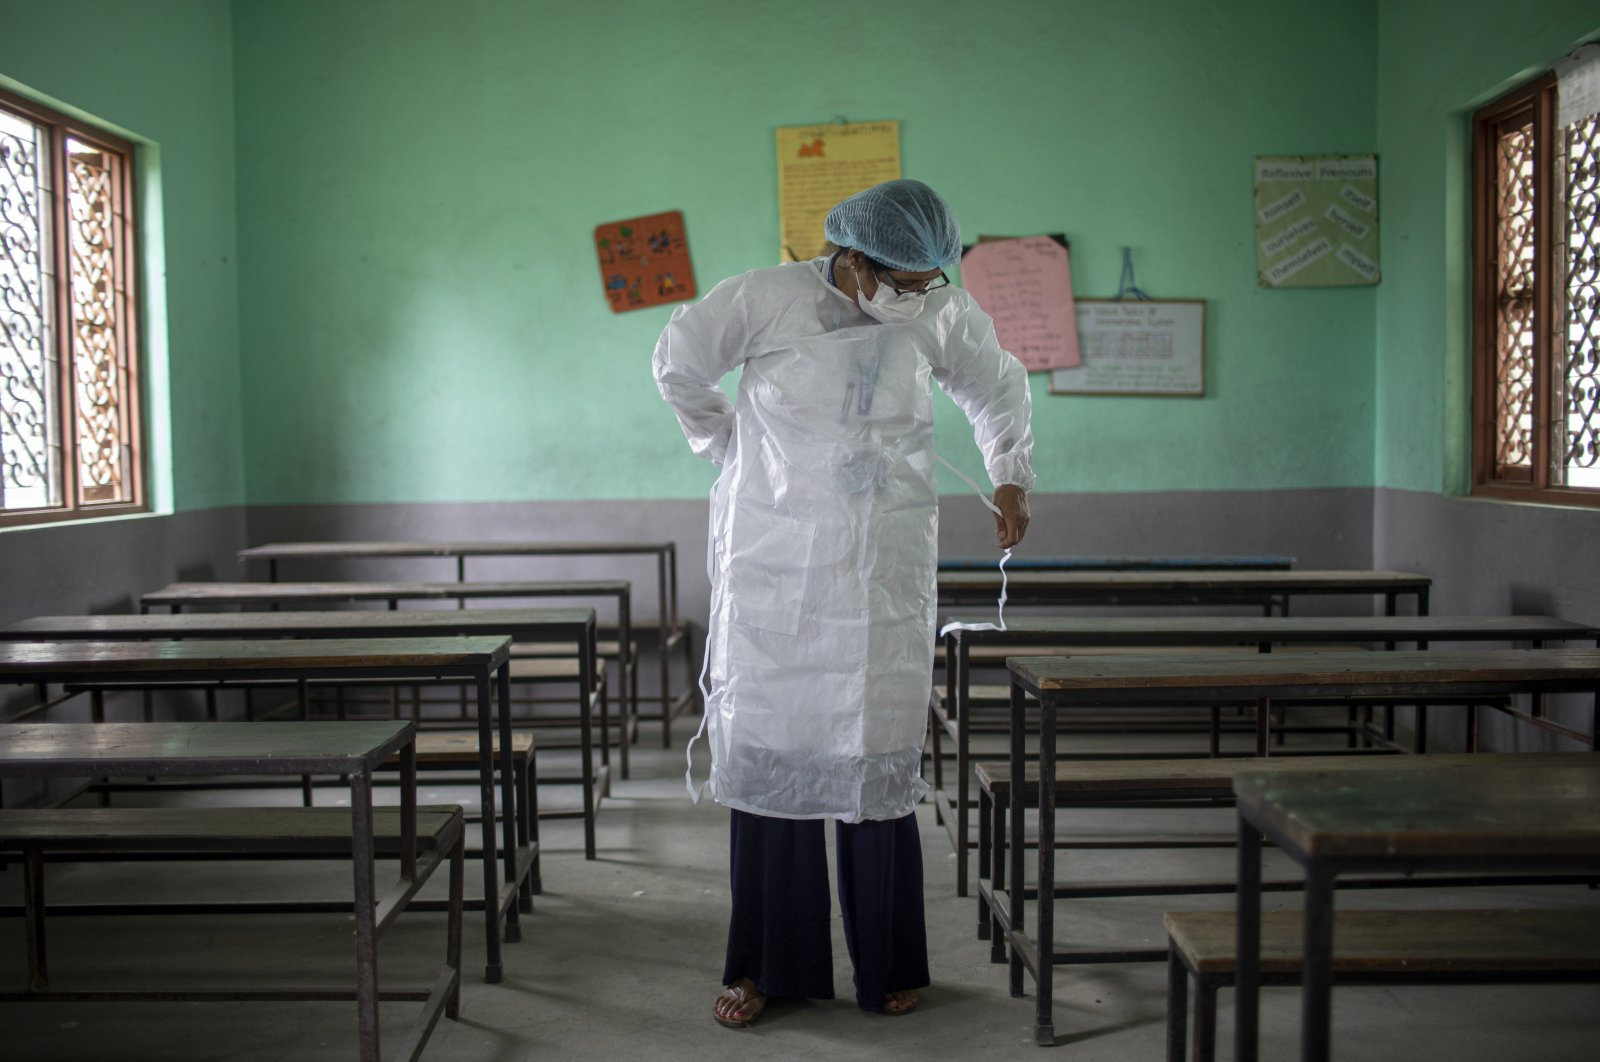 A health worker prepares to administer a second dose of Covishield COVID-19 vaccine at Karyabinayak School in Lalitpur, Nepal, June 23, 2021. (EPA Photo)